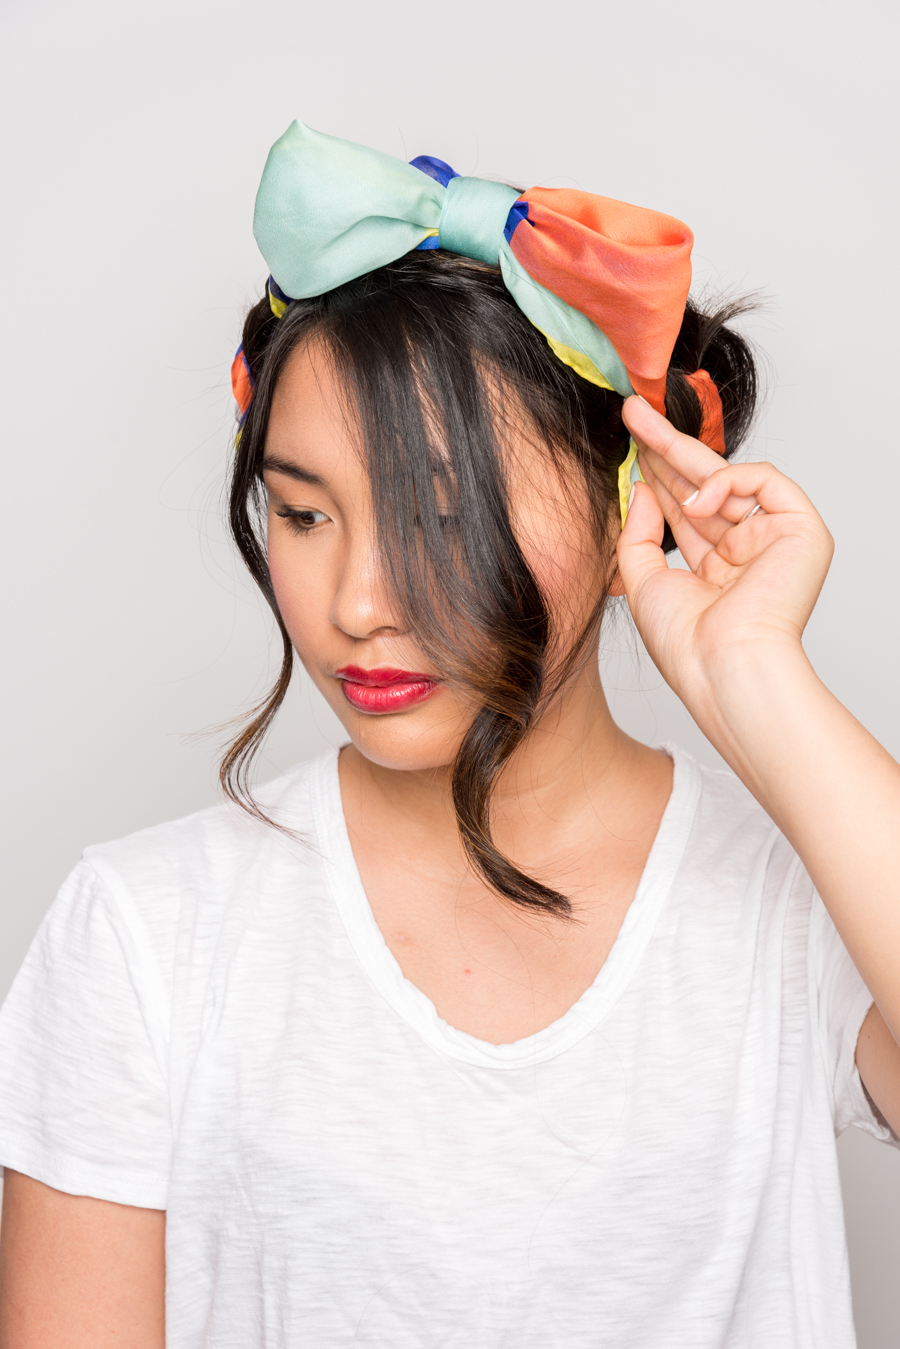 How To Use A Scarf For Stylish Summer Hair スカーフを使った簡単ヘアアレンジ 13